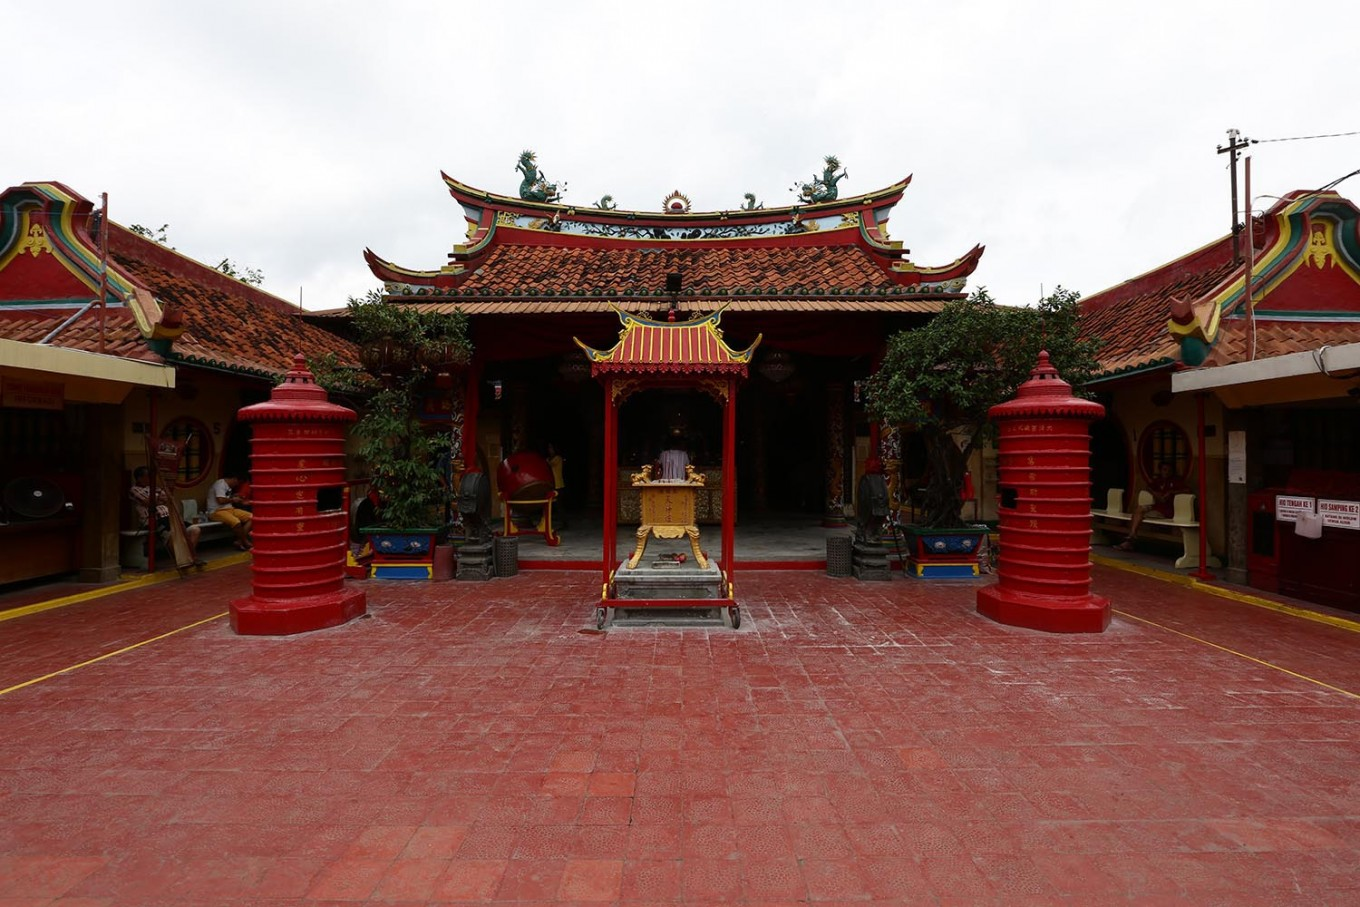 Two well-preserved traditions of Tangerang's Benteng Chinese